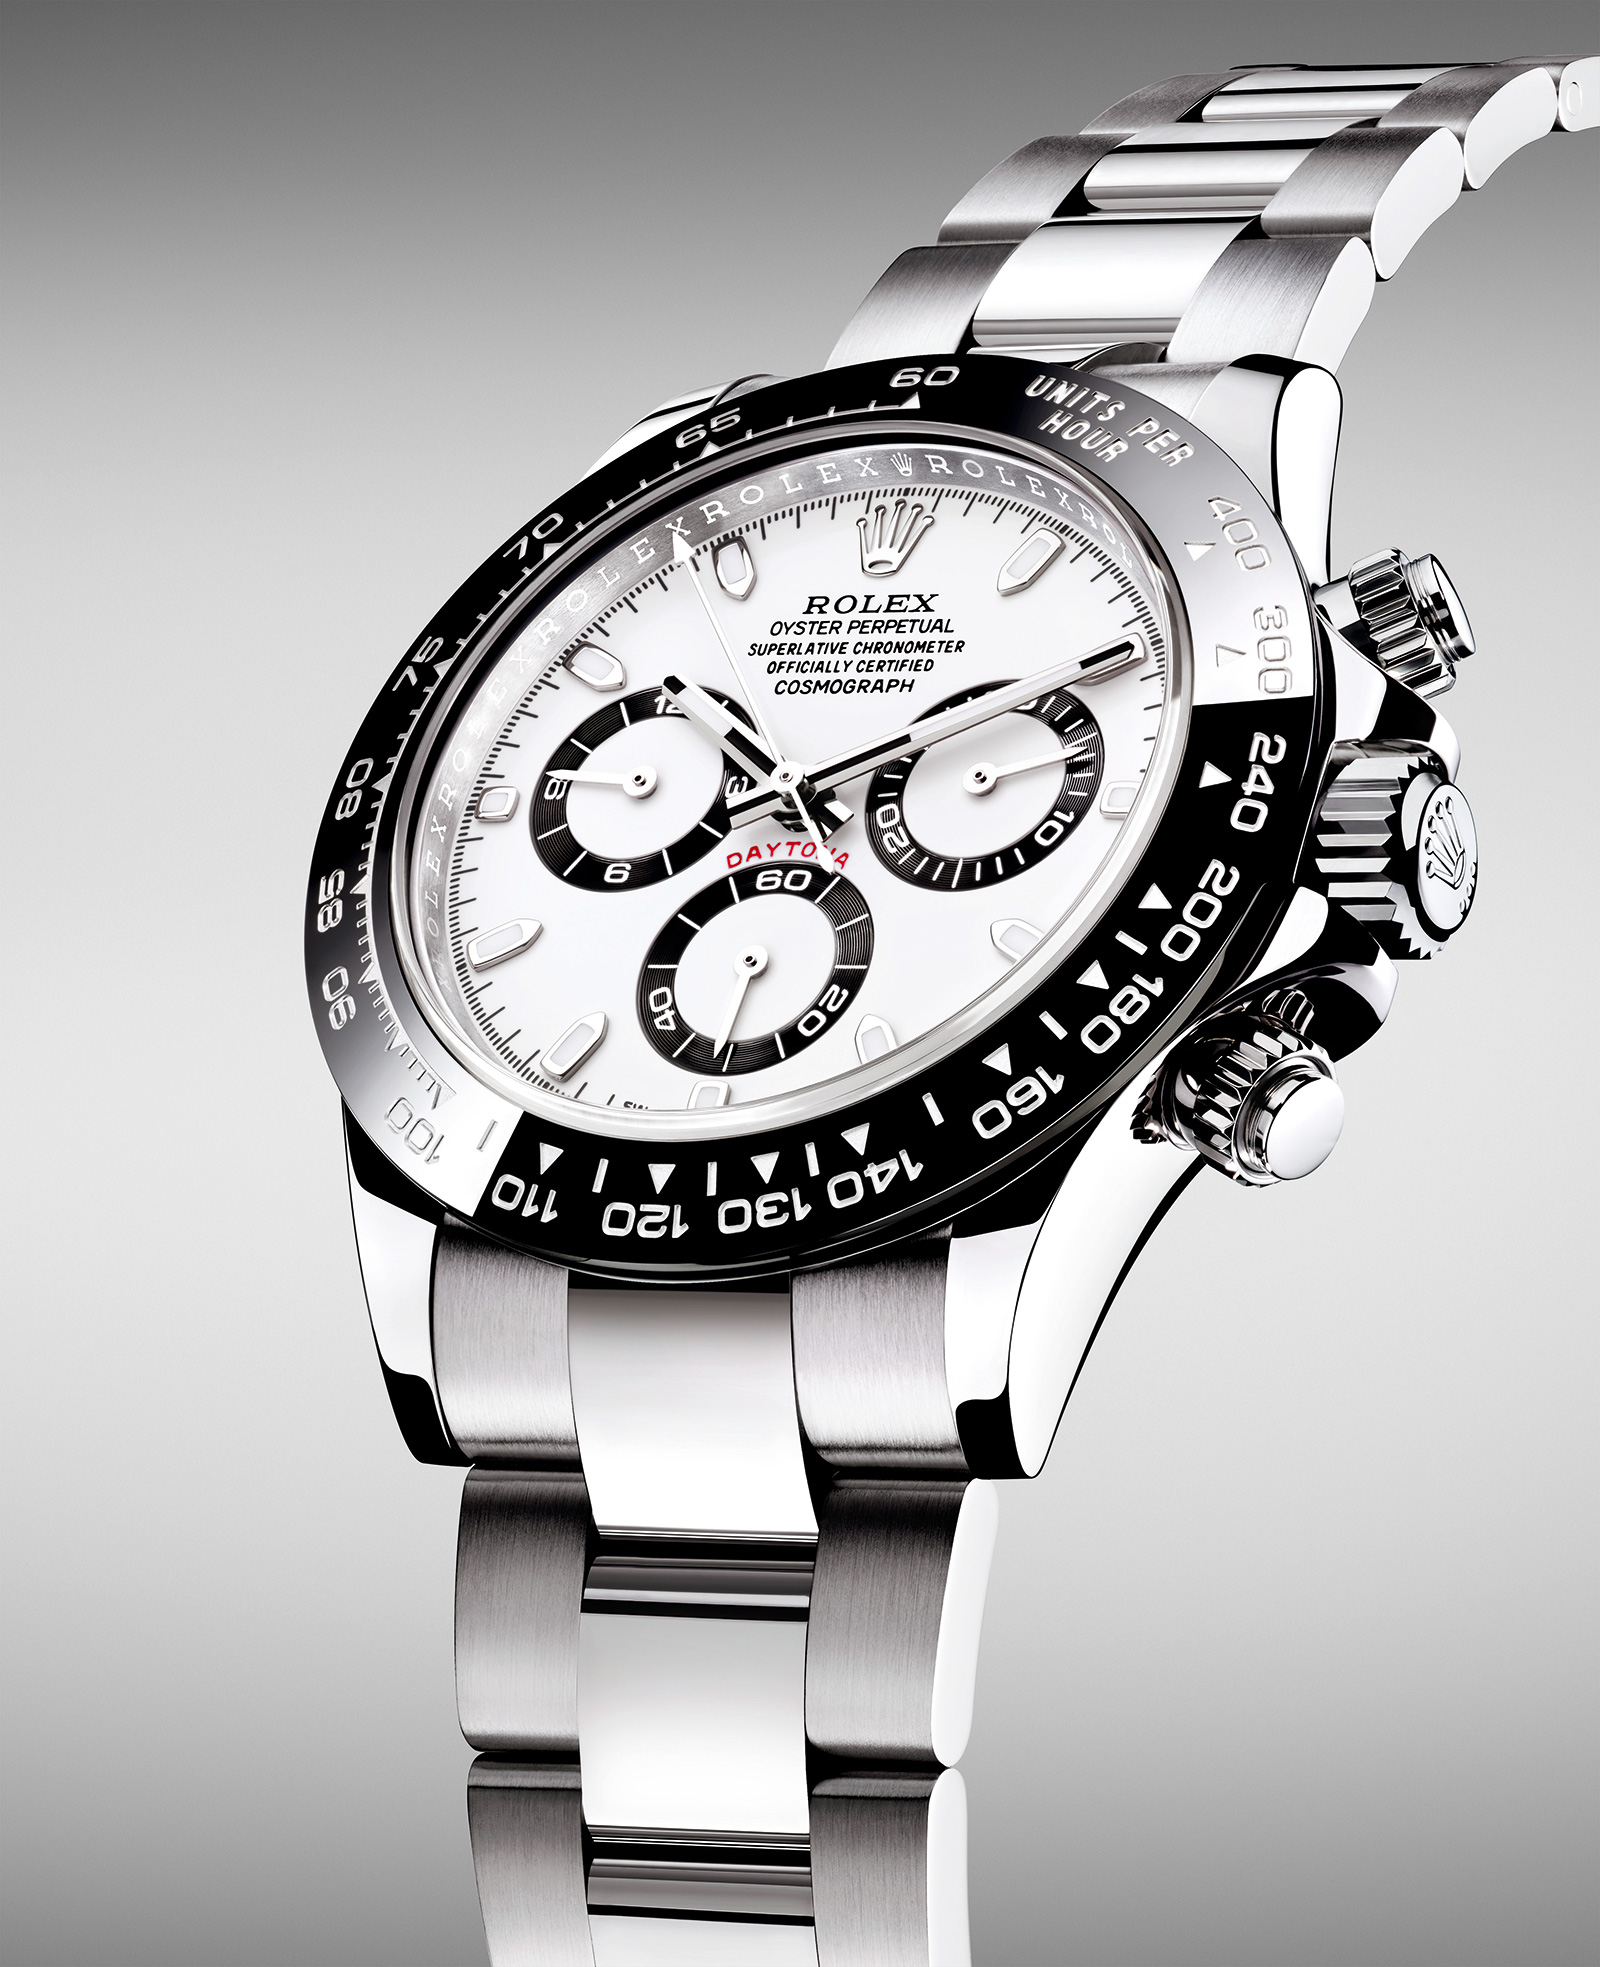 Rolex Daytona Steel Ceramic 116500 LN 2